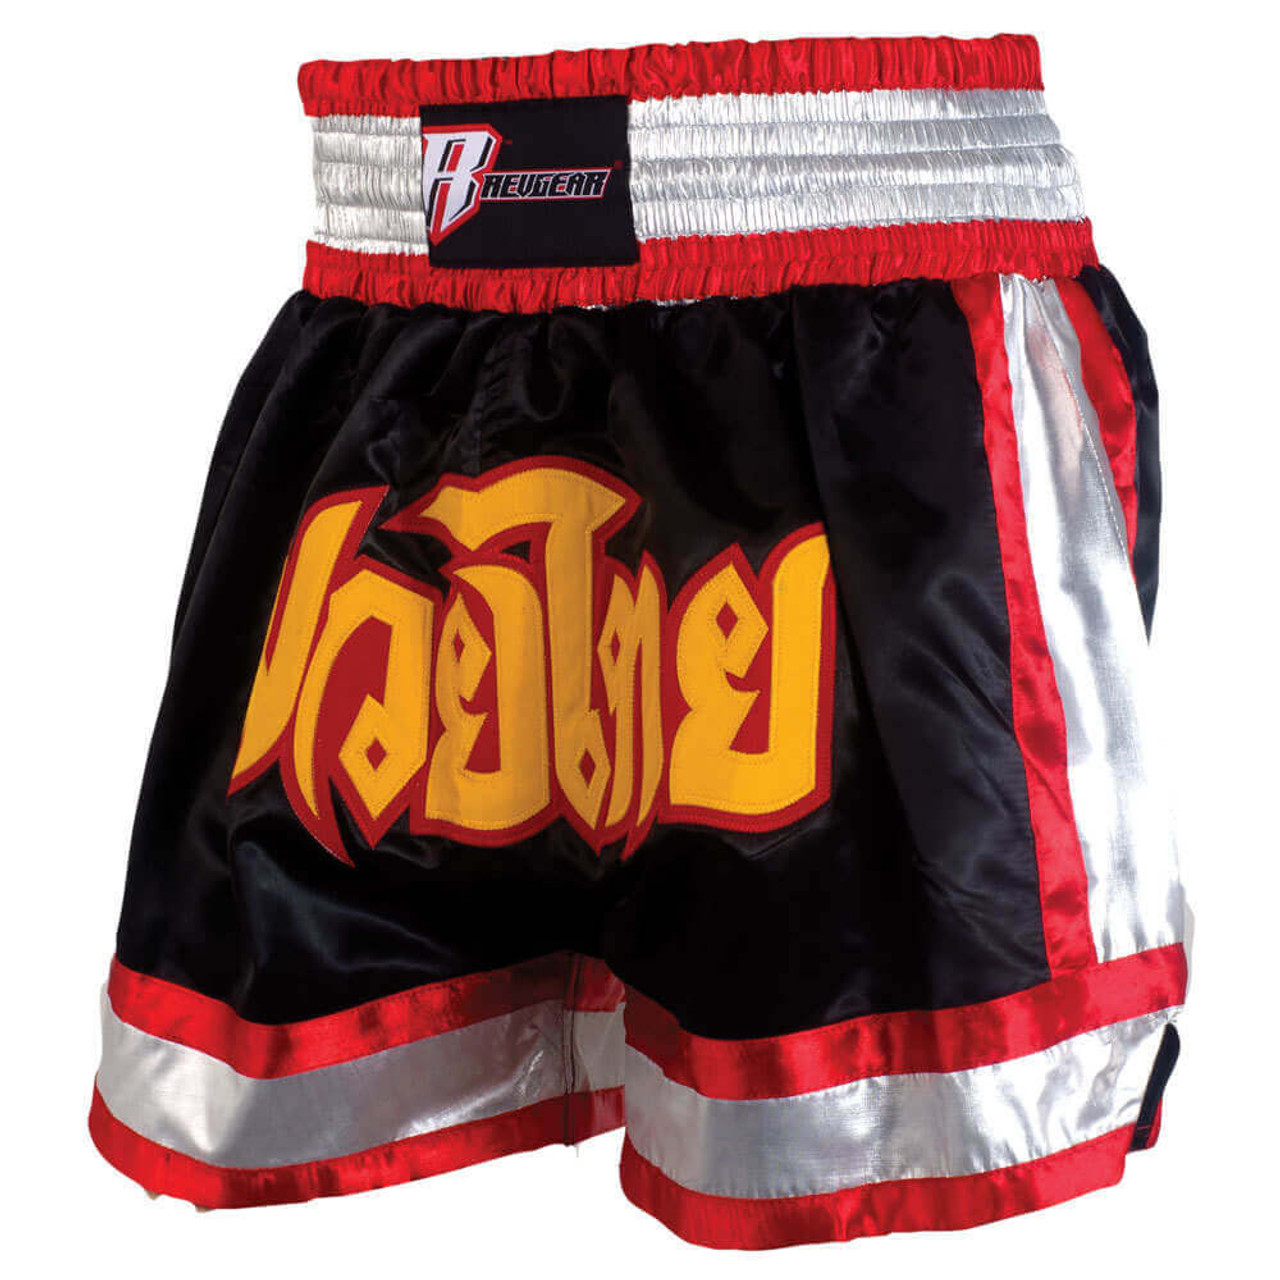 Deluxe Muay Thai Shorts - Black